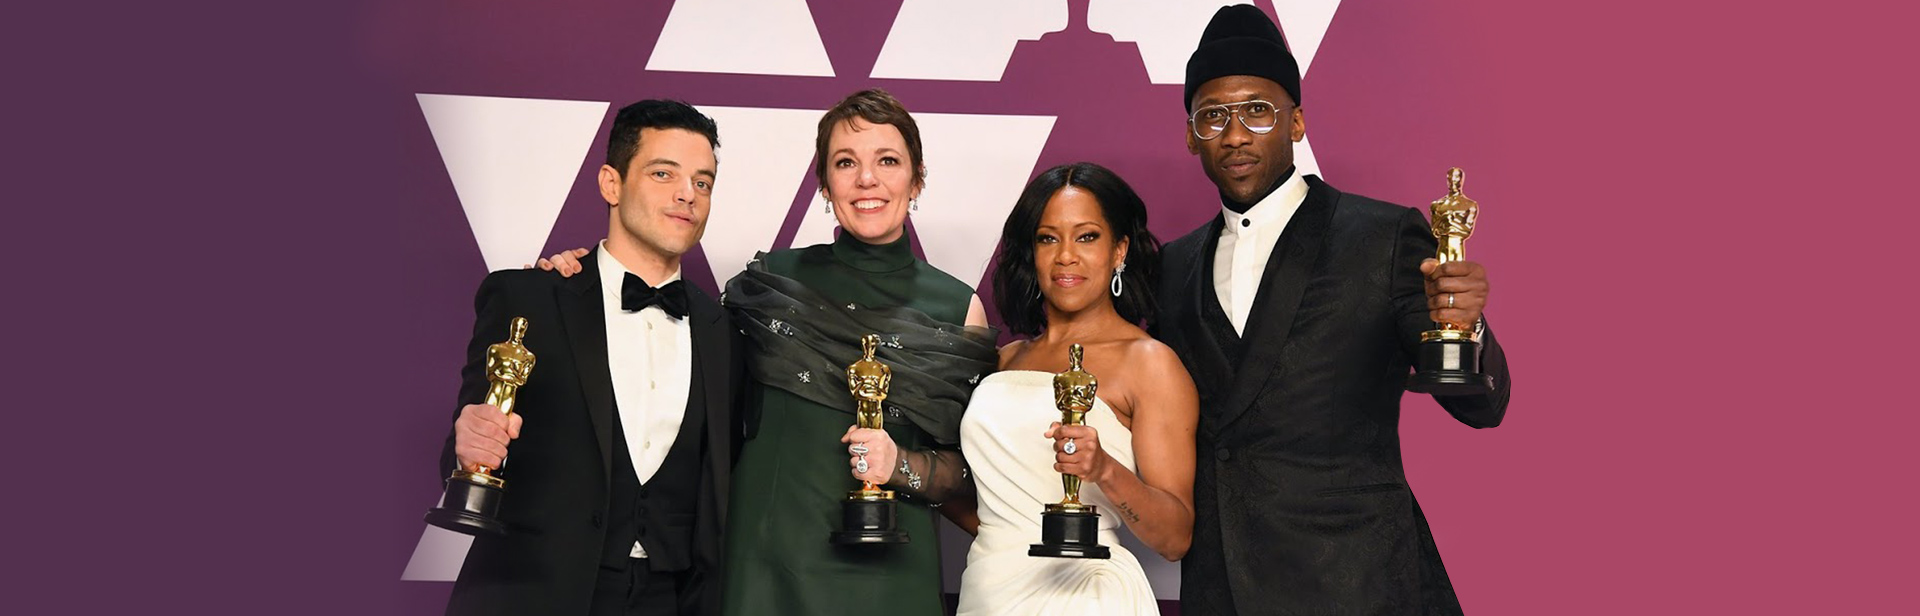 The Oscars 2019: Winners Take Home the Gold